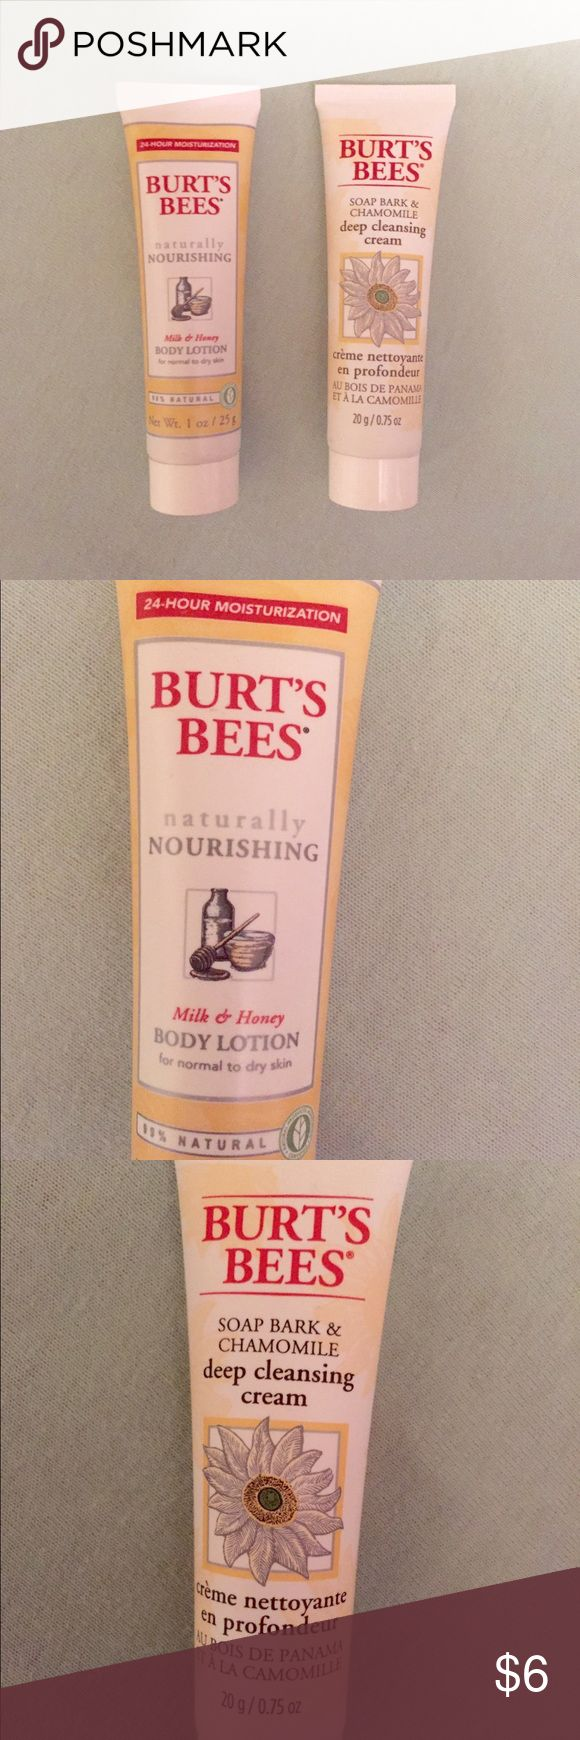 Soap Bark And Chamomile Deep Cleansing Cream by Burt's Bees #10